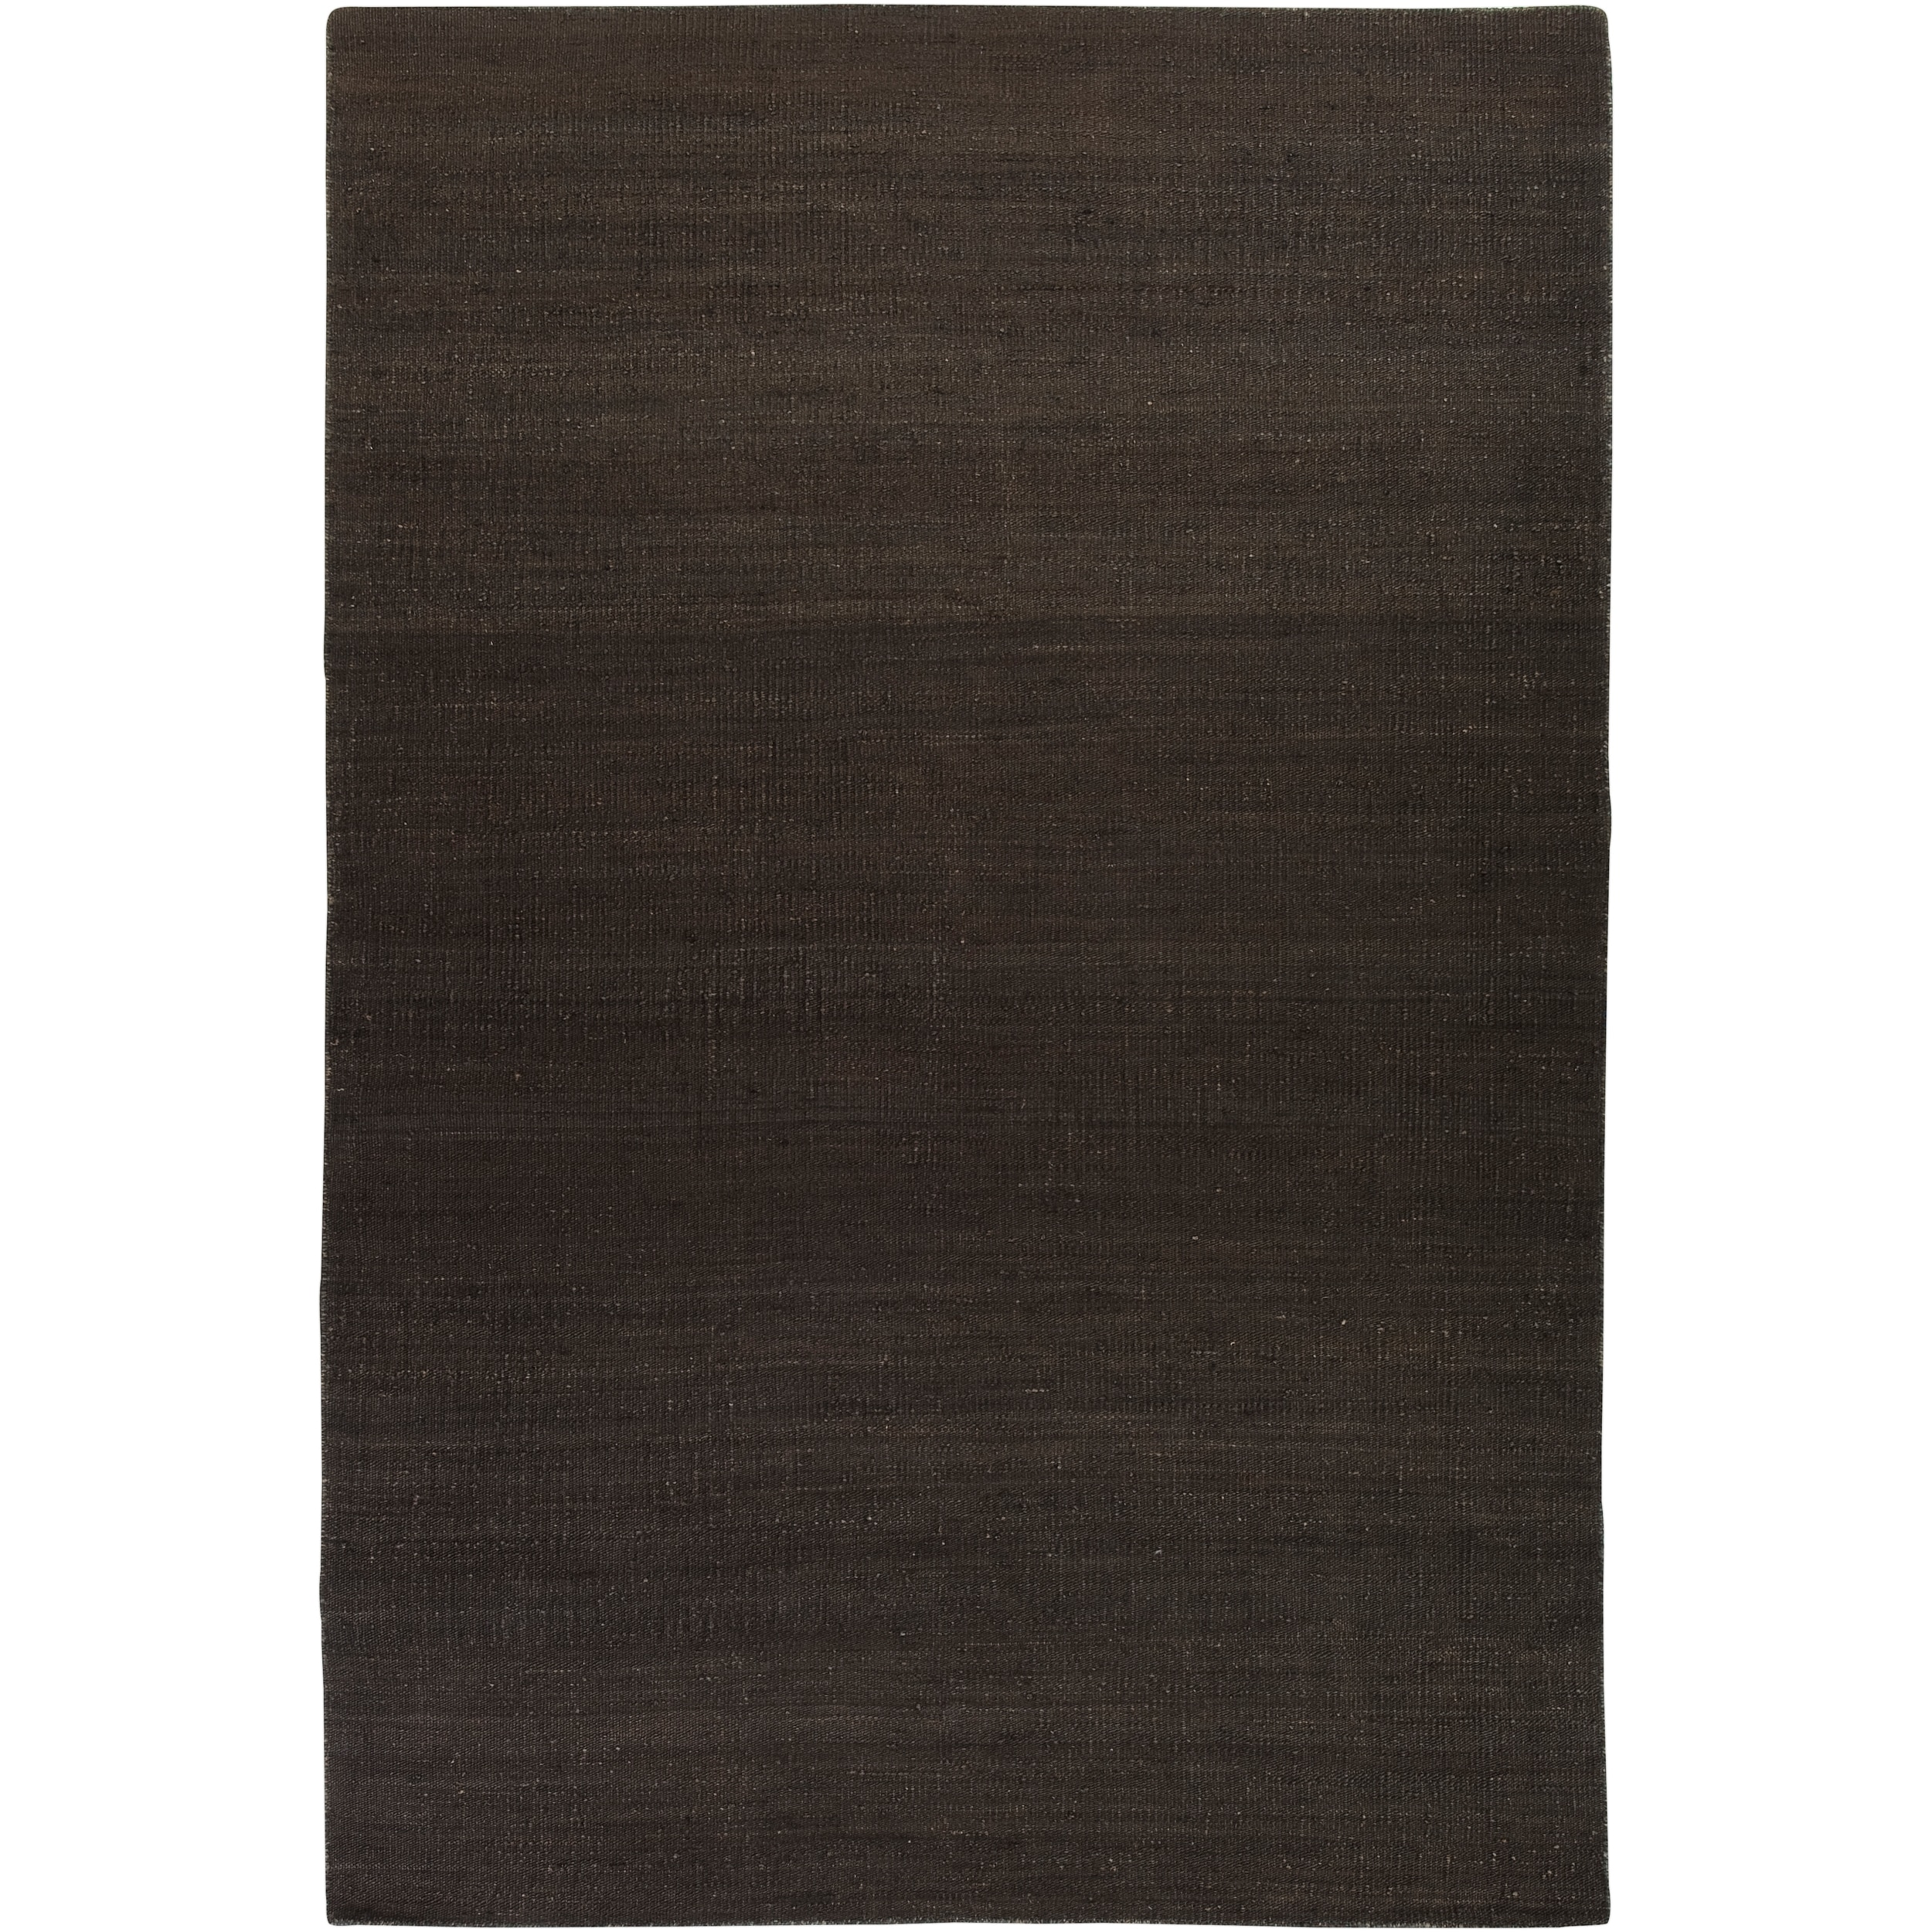 Hand Woven Conifer Brown Reversible Jute Rug Area Rug 2